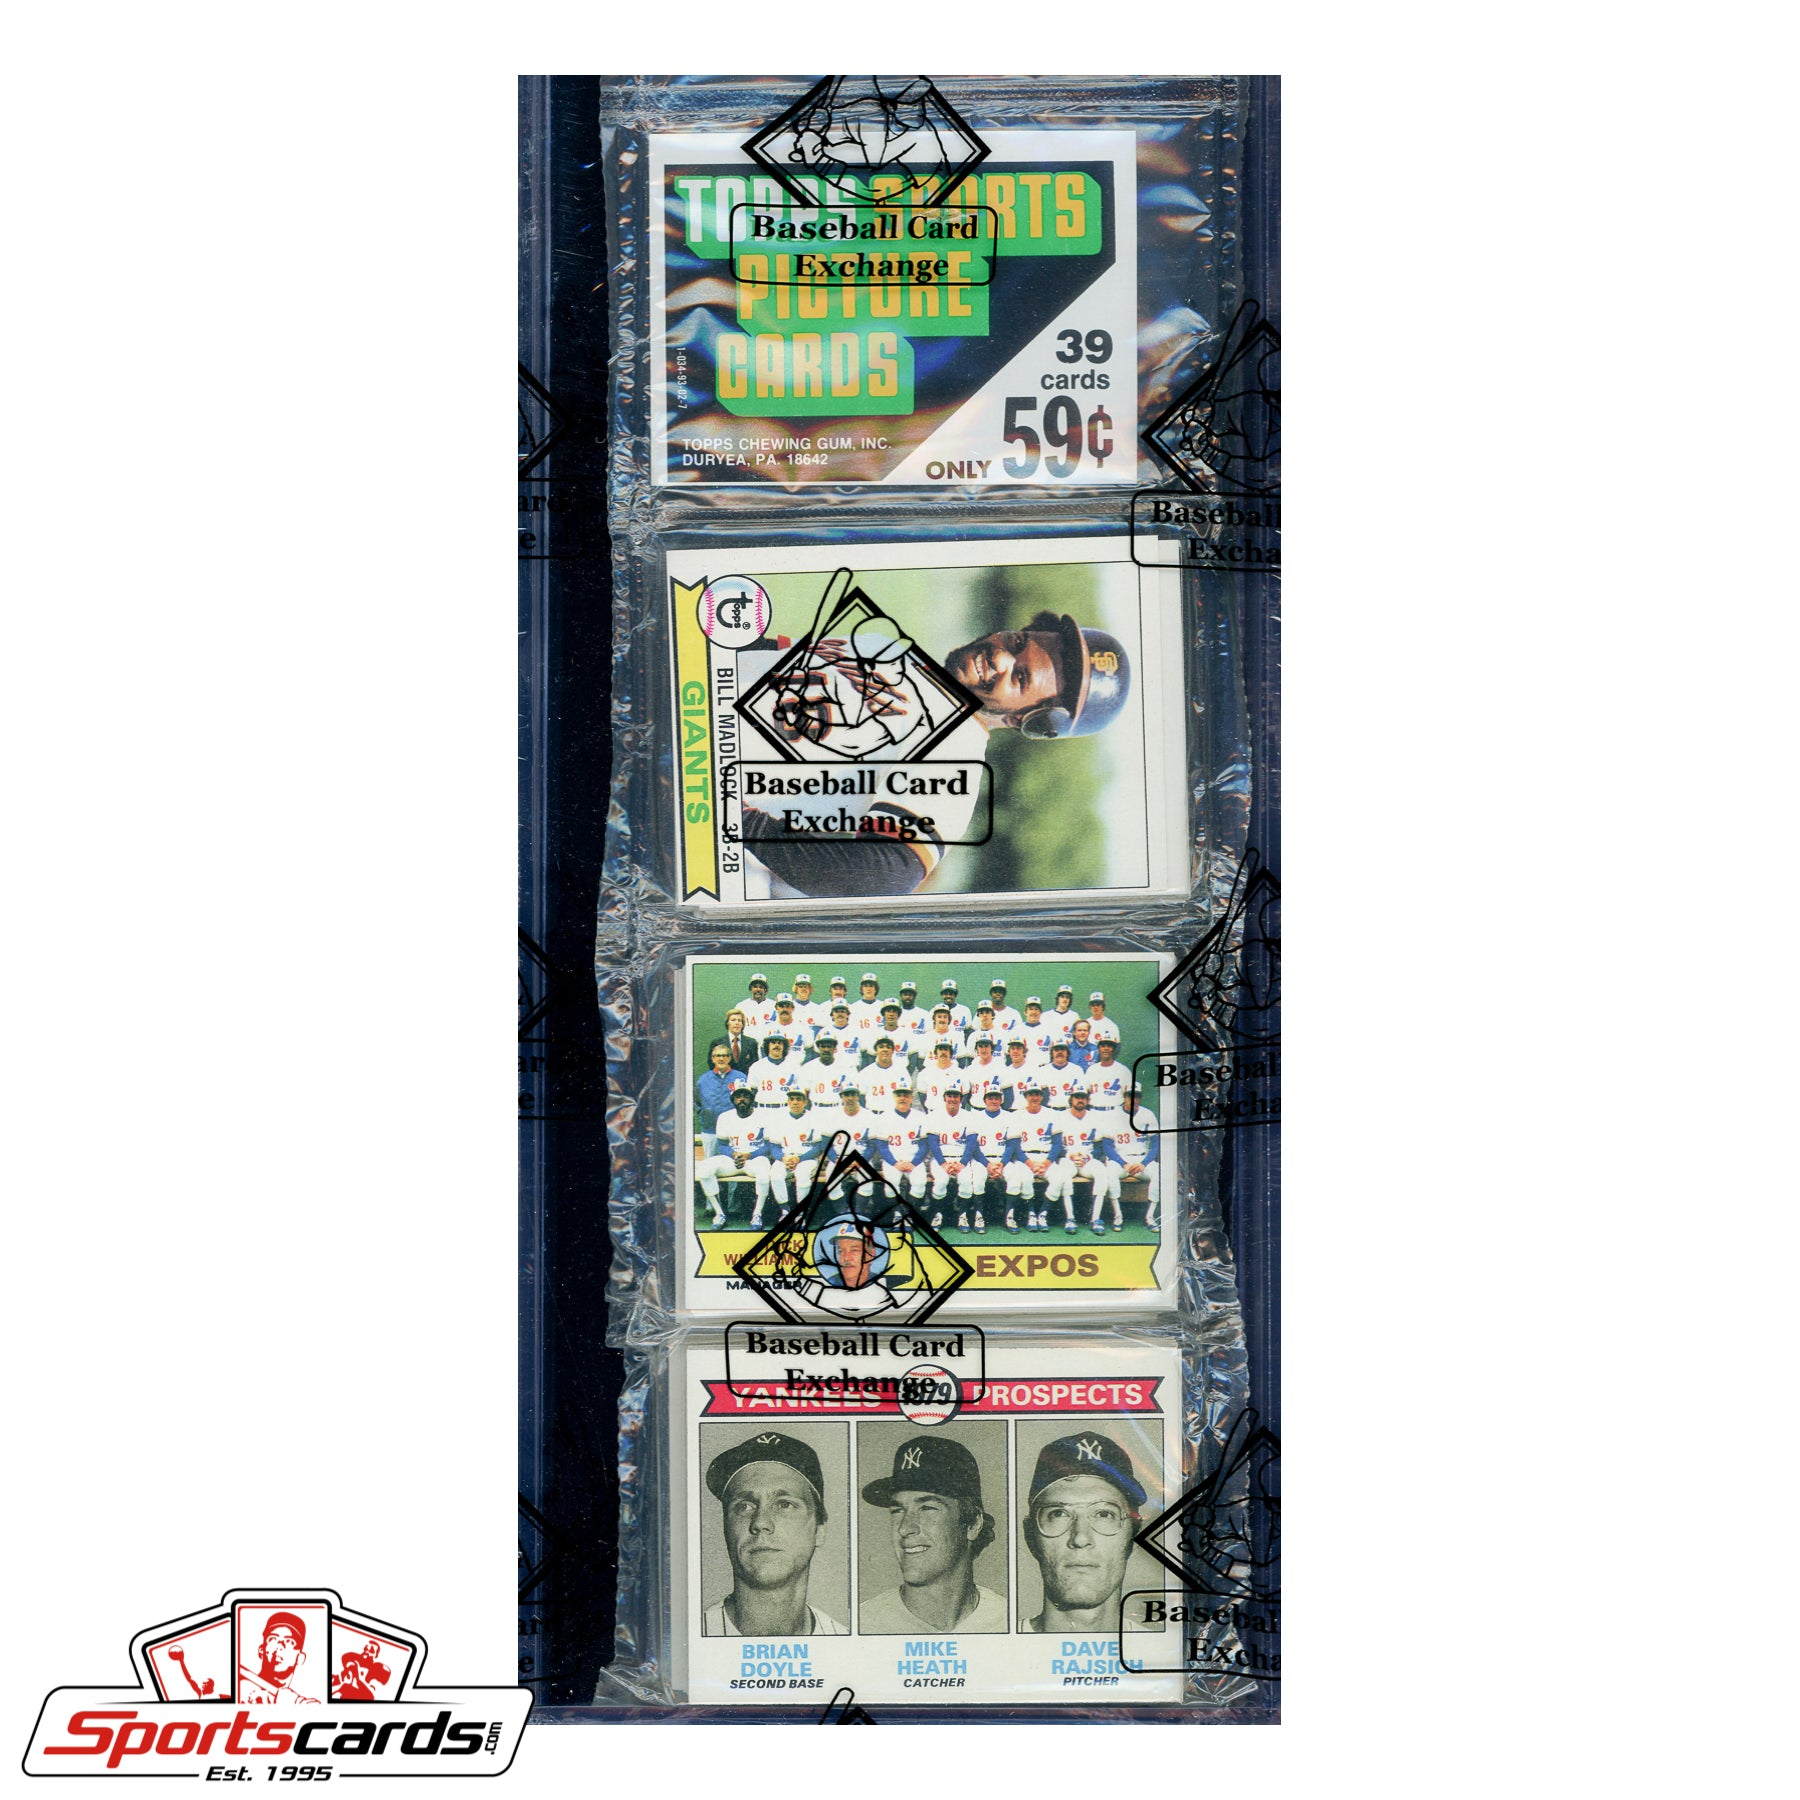 1979 Topps Baseball Rack Pack BBCE Certified - Find the Ozzie Smith RC!